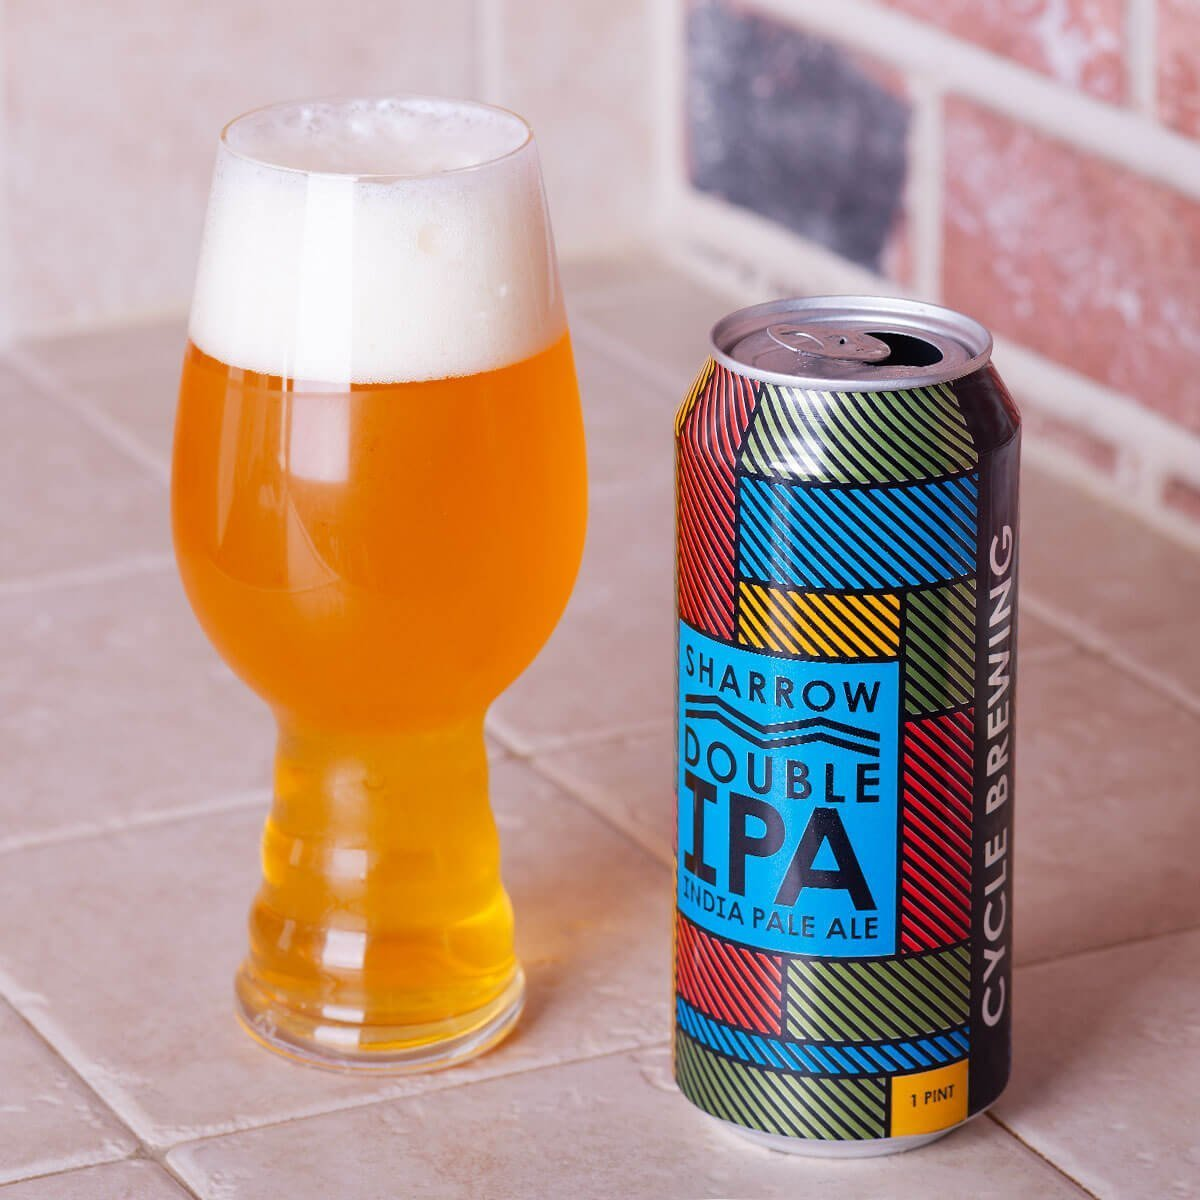 Sharrow is an American Double IPA by Cycle Brewing Company that delivers piney and floral hoppiness that's well-balanced by its malty backbone.